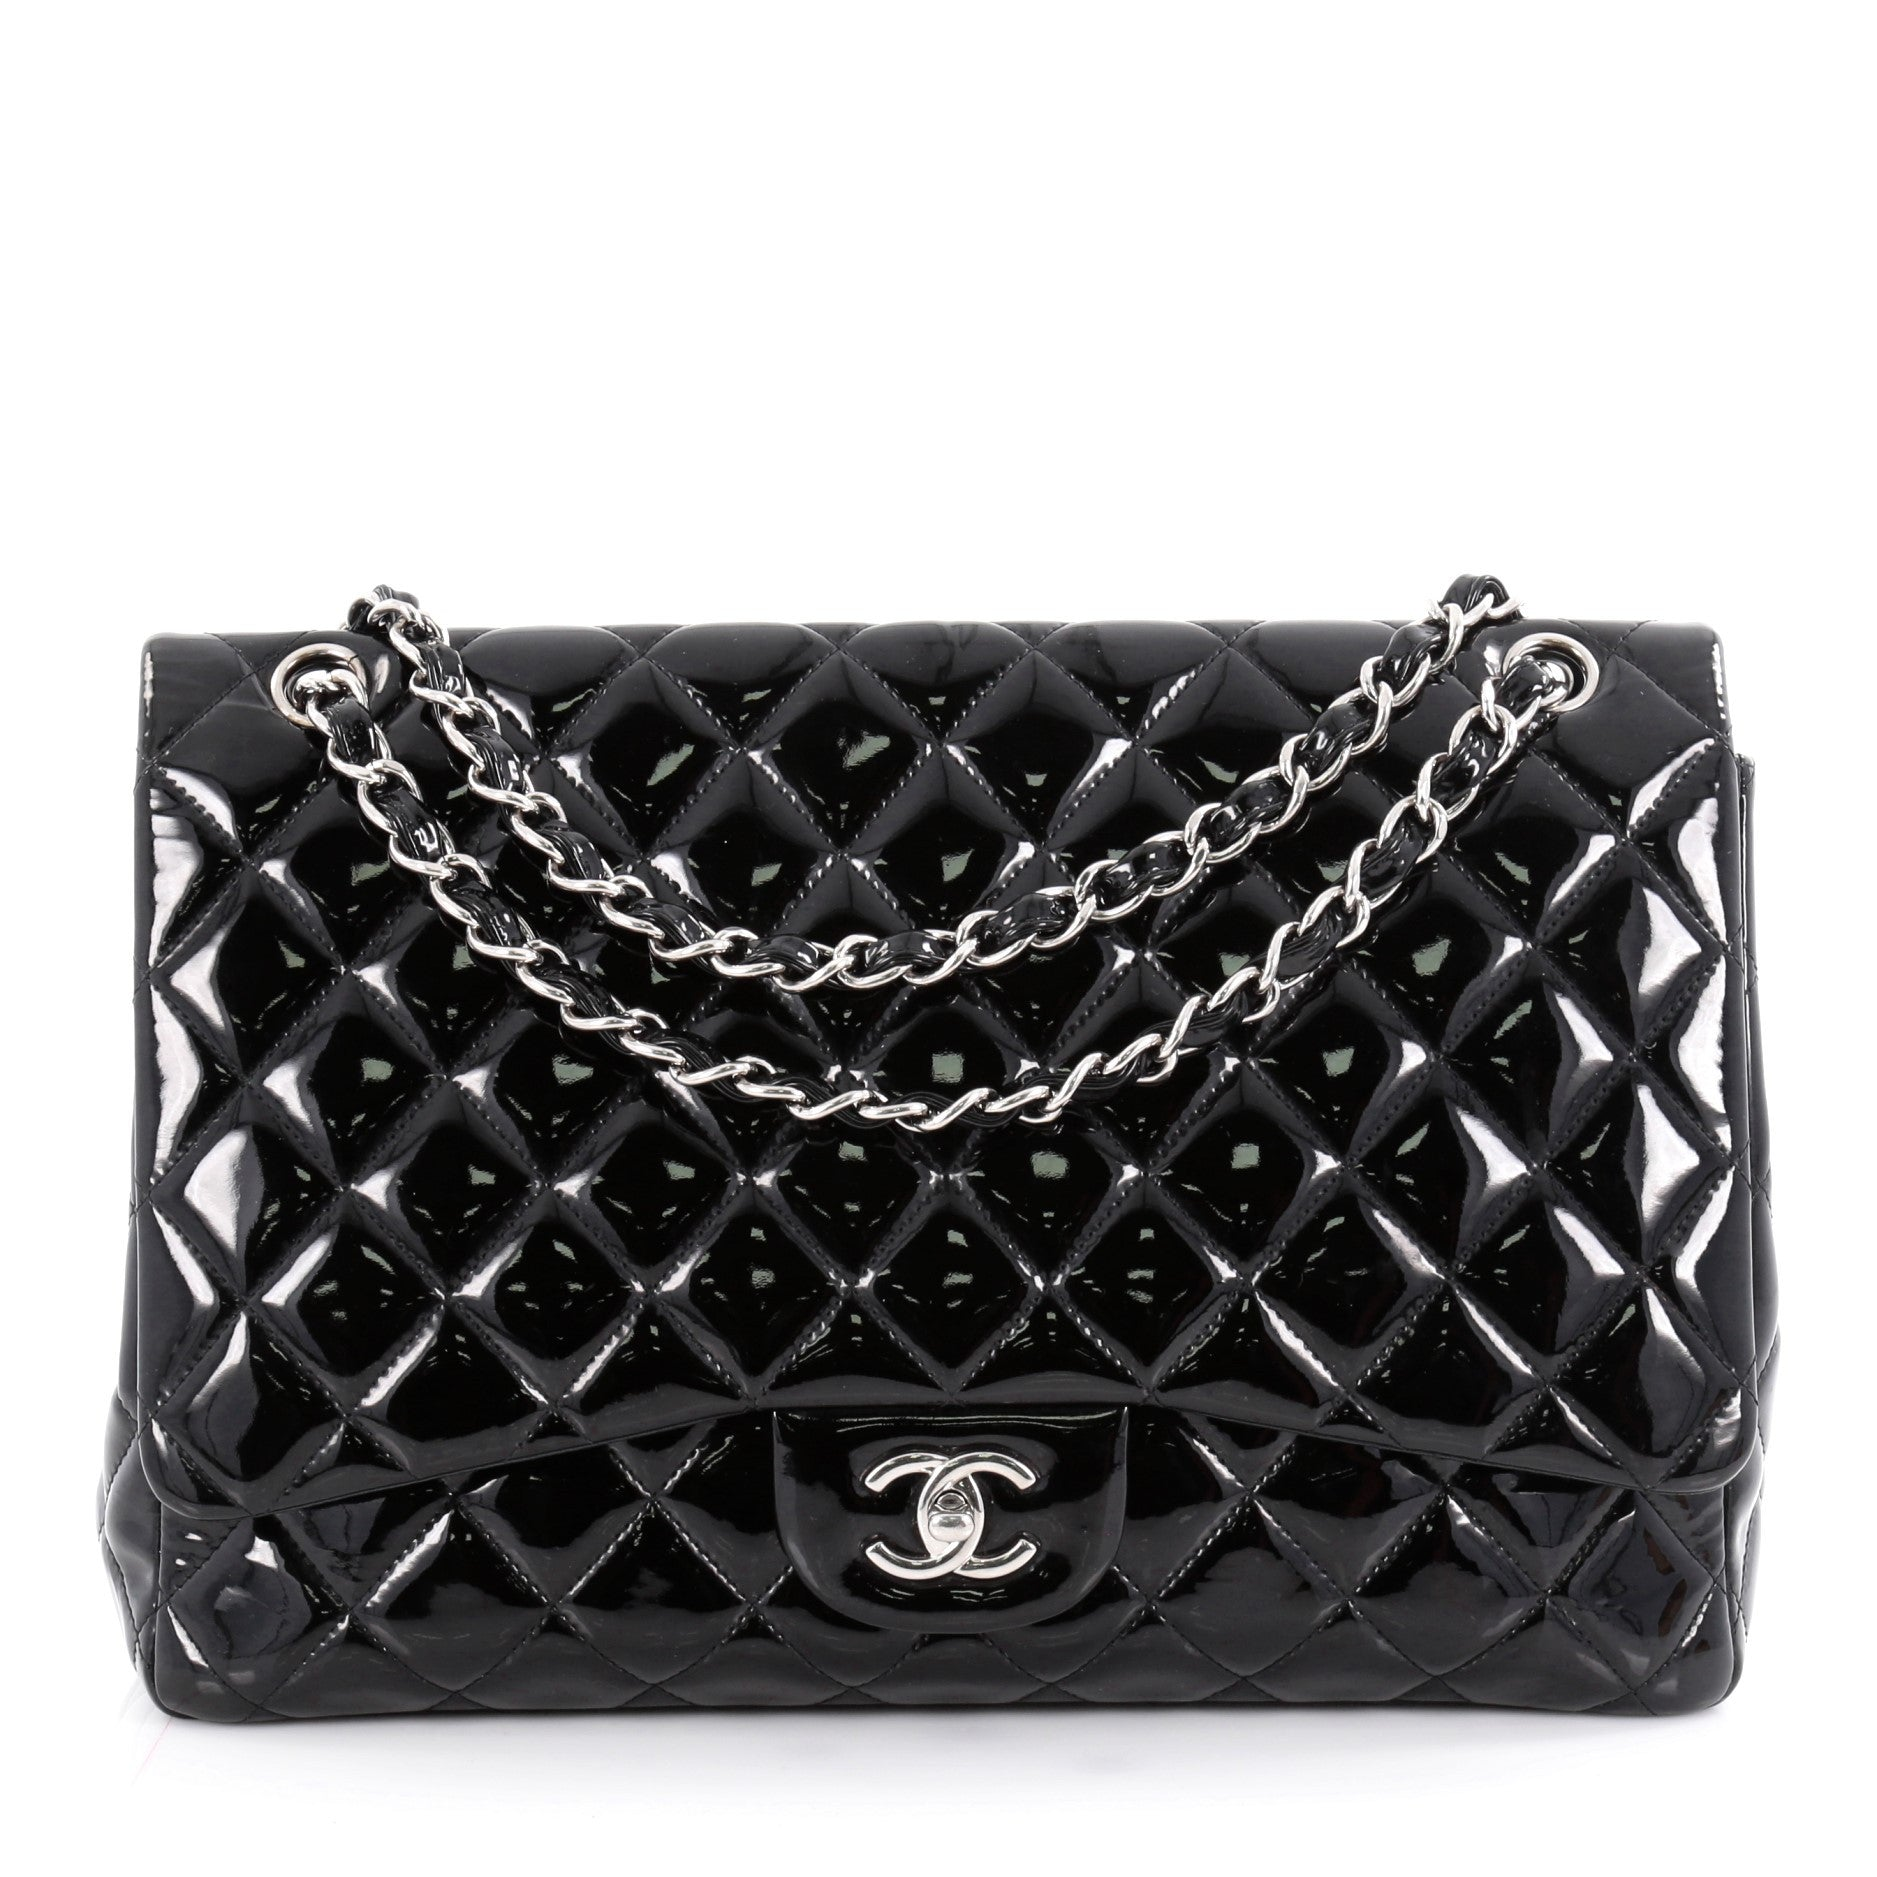 3cf7035c45fd 21010-02_Chanel_Classic_Single_Flap_Bag_Quilted_Pa_2D_0003.jpg?v=1499780025